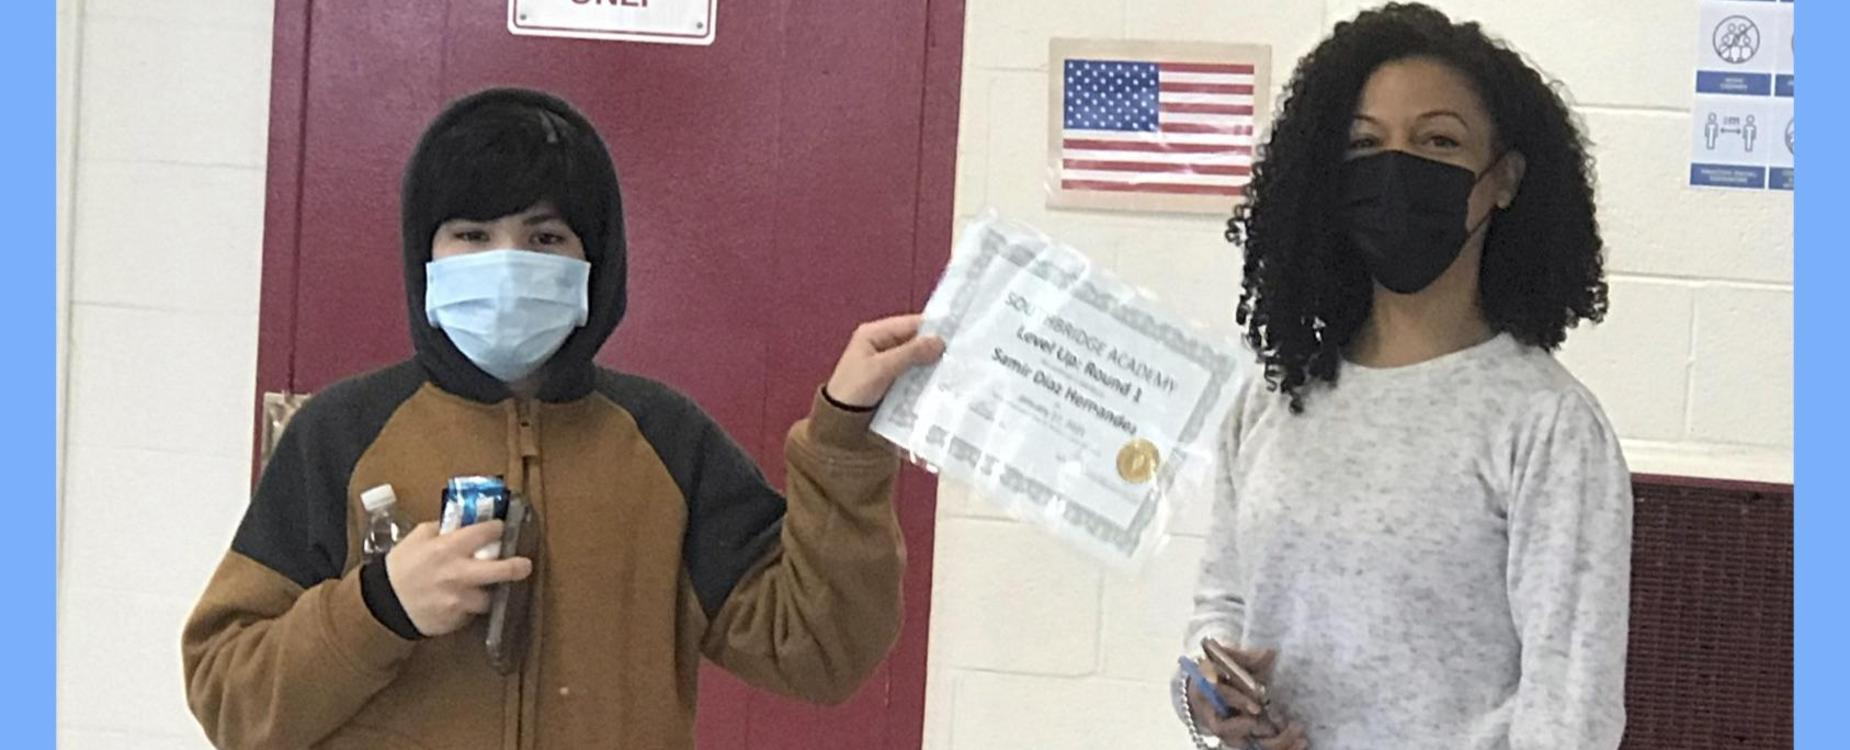 Photo of a student at Southbridge Academy receiving a certificate of recognition from a staff member